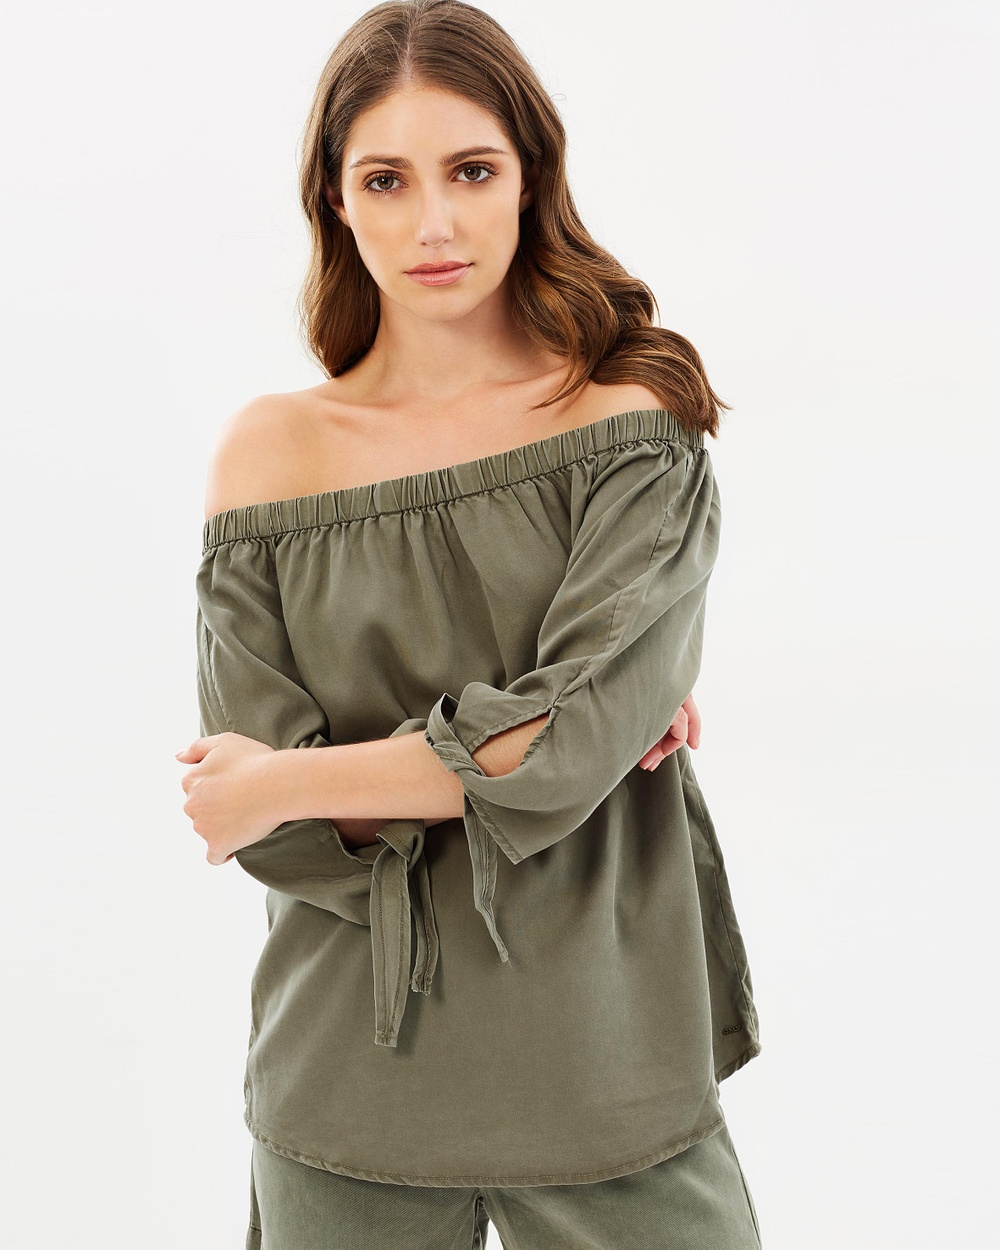 ONLY India Arizona 3 4 Off Shoulder Top Tops Kalamata India Arizona 3-4 Off-Shoulder Top